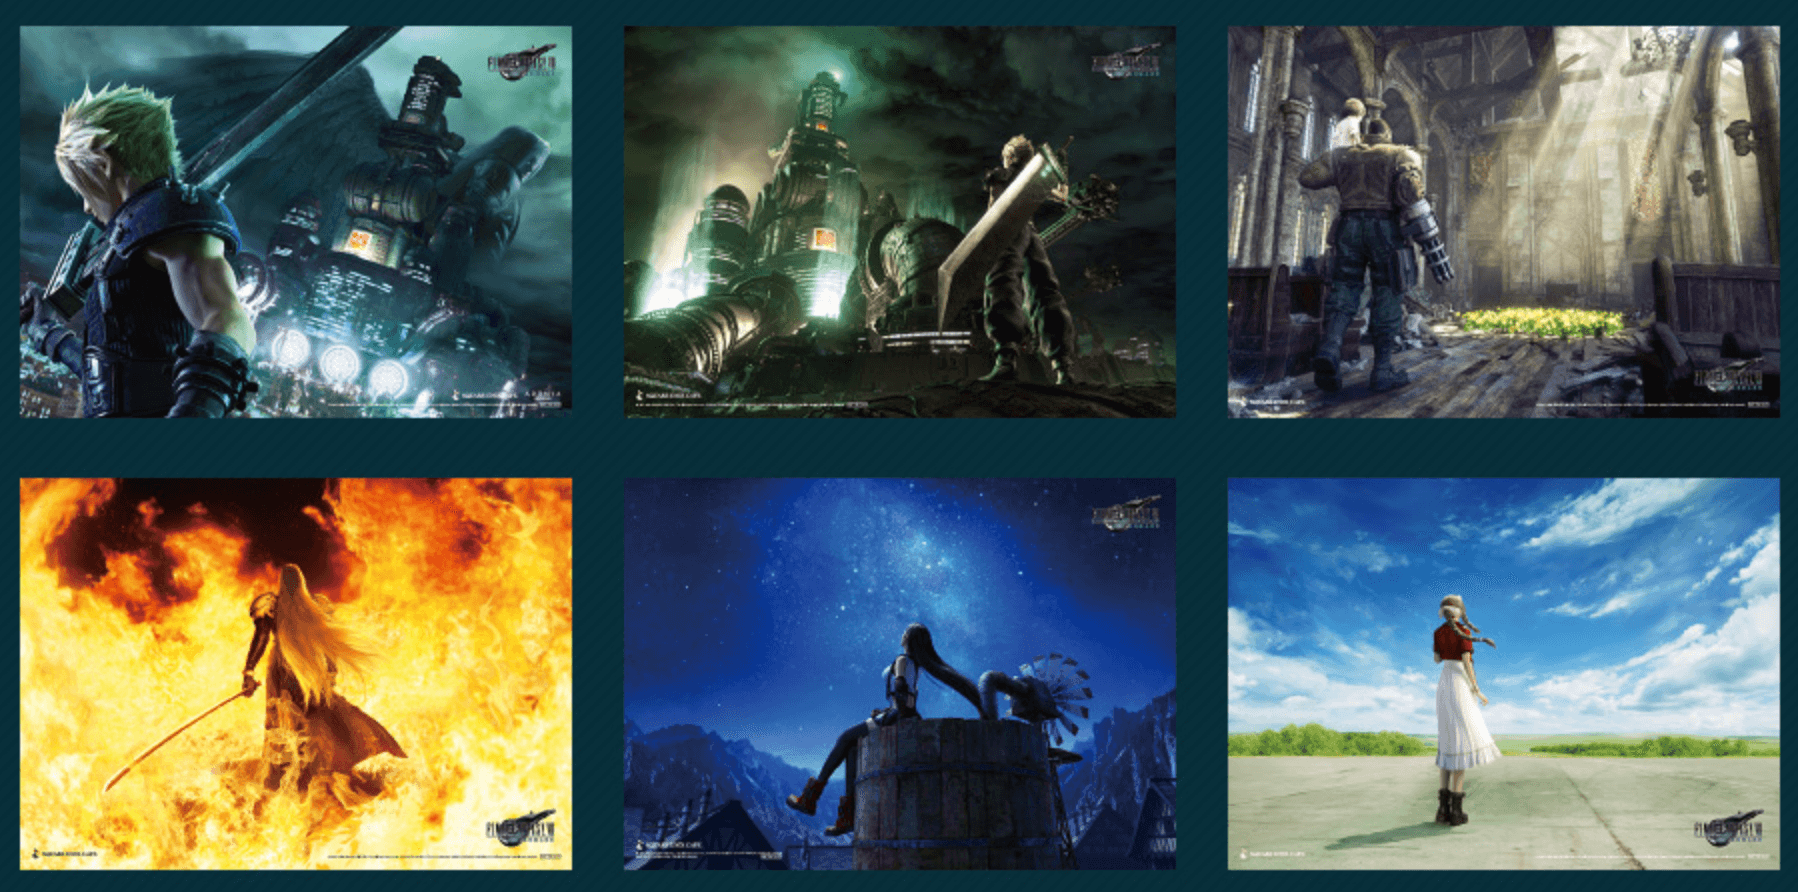 Place mats provided by FINAL FANTASY VII REMAKE Cafe